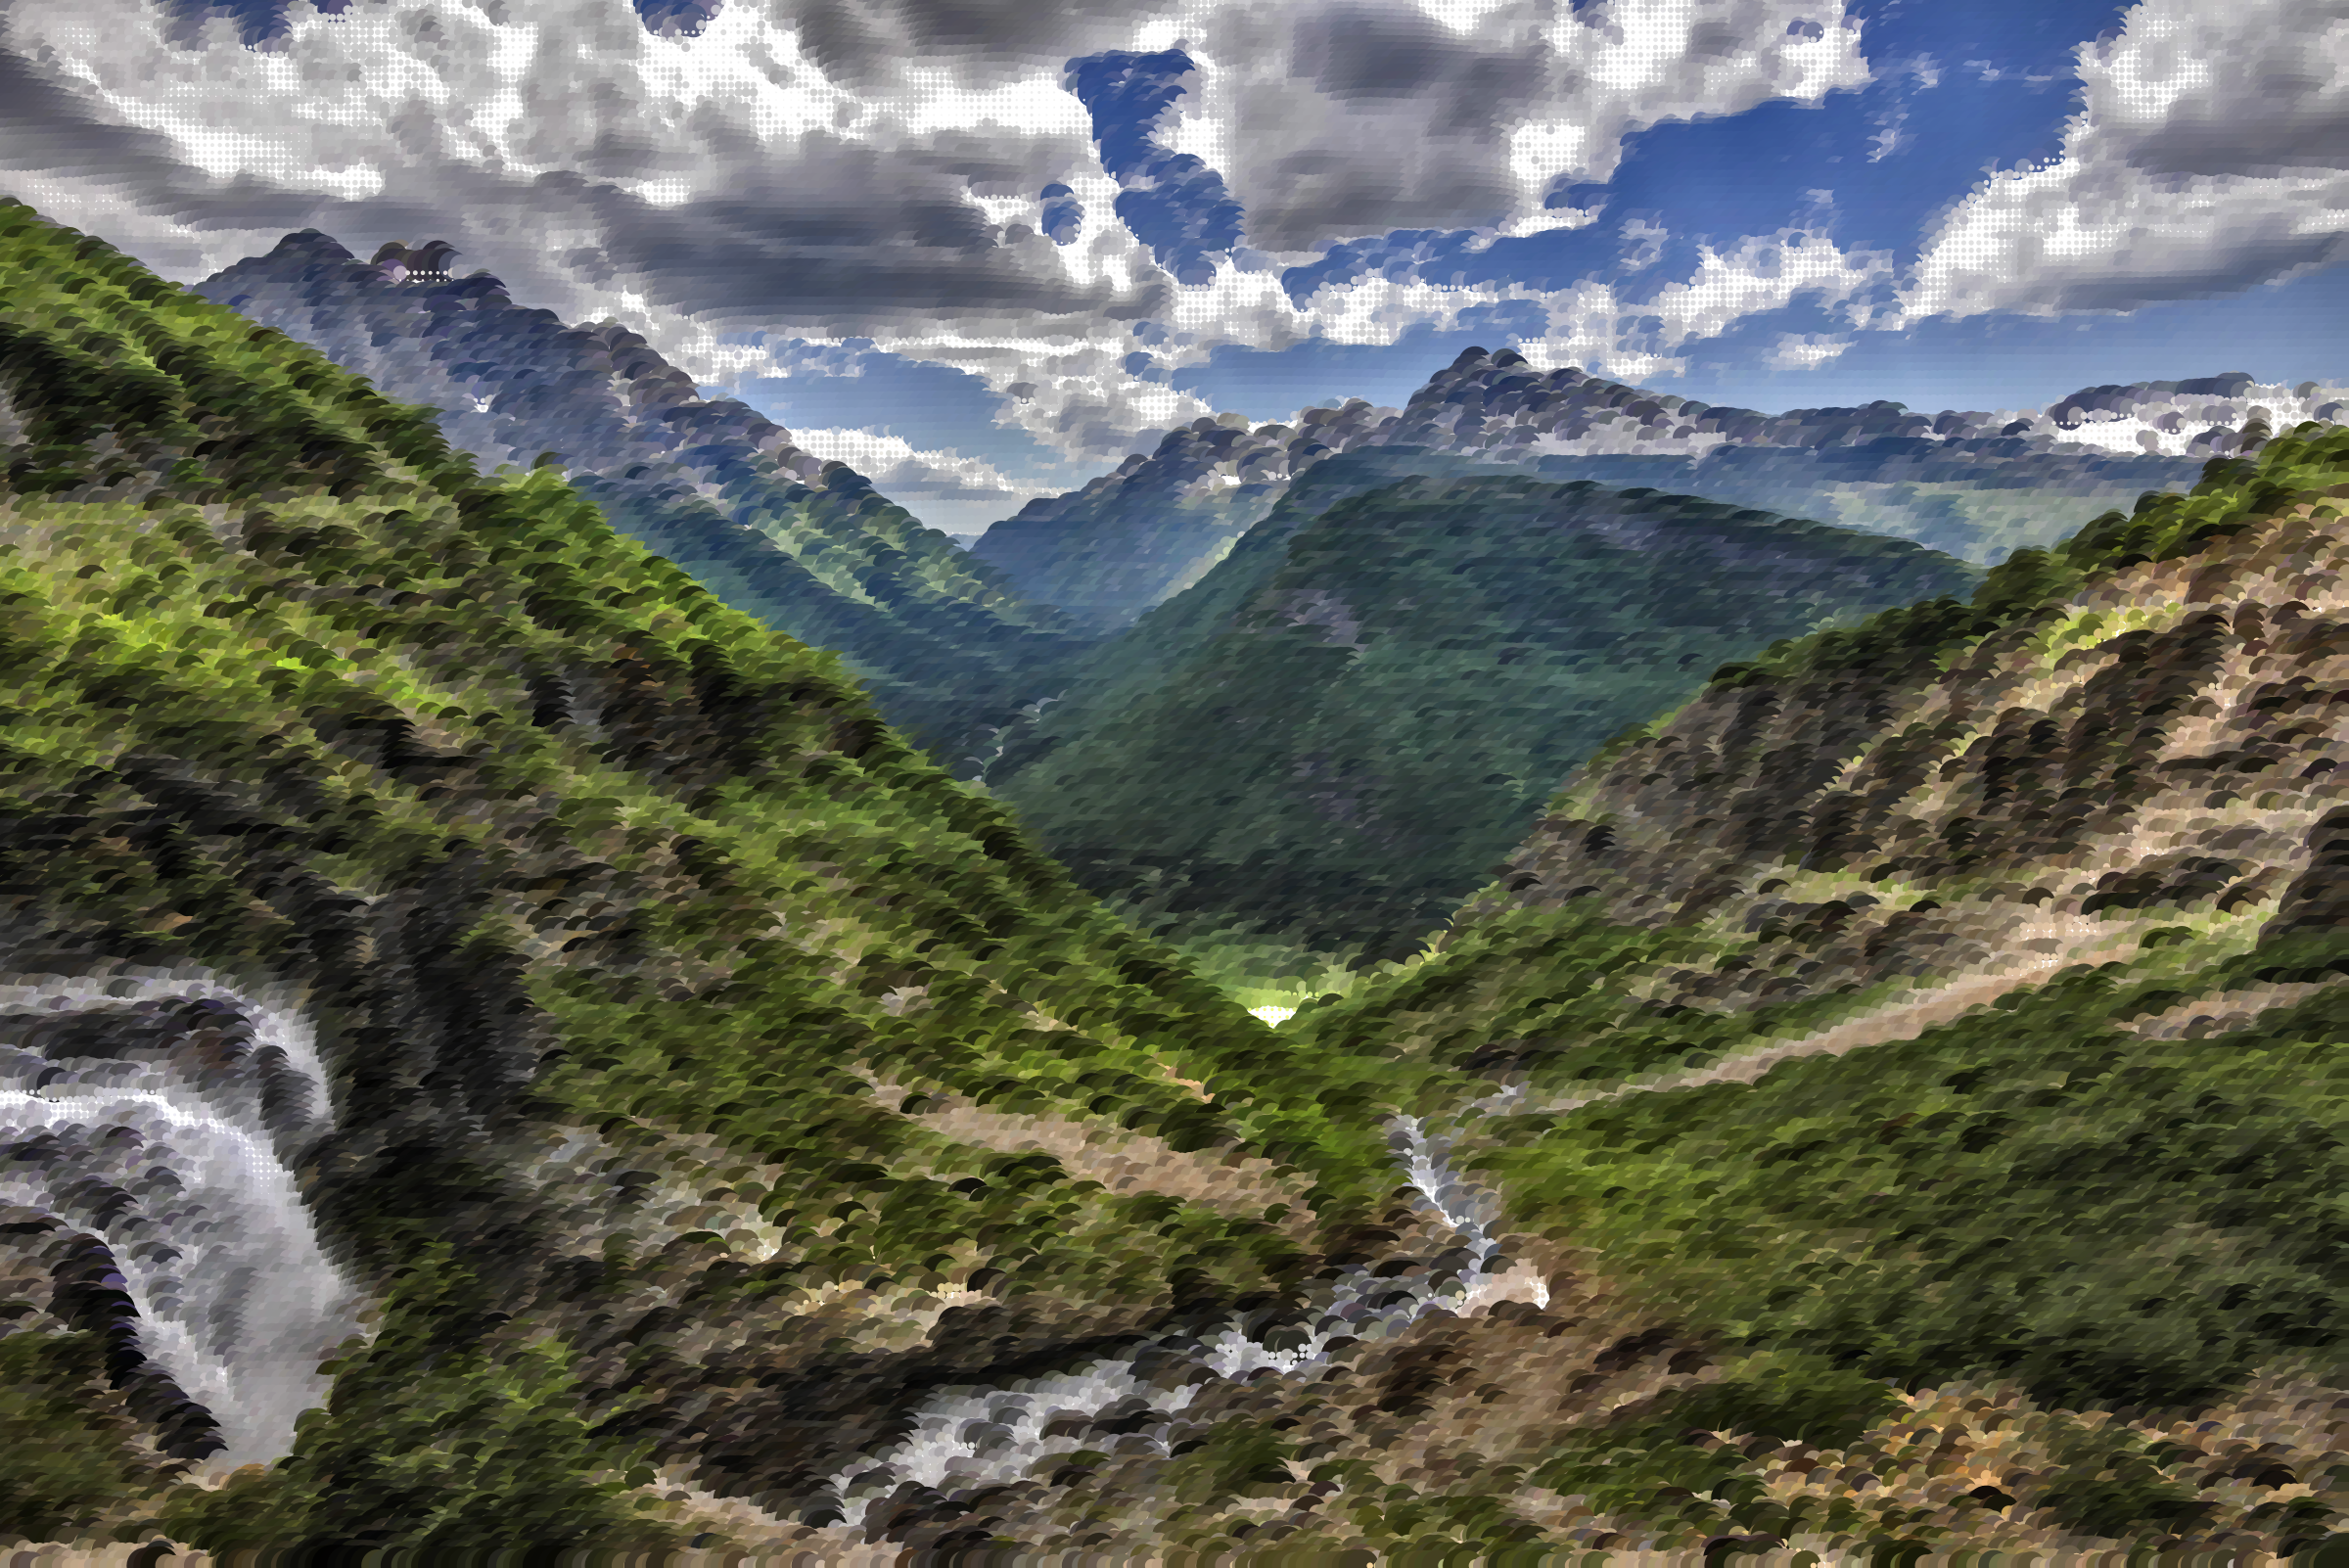 Surreal Glorious Valley by GDJ